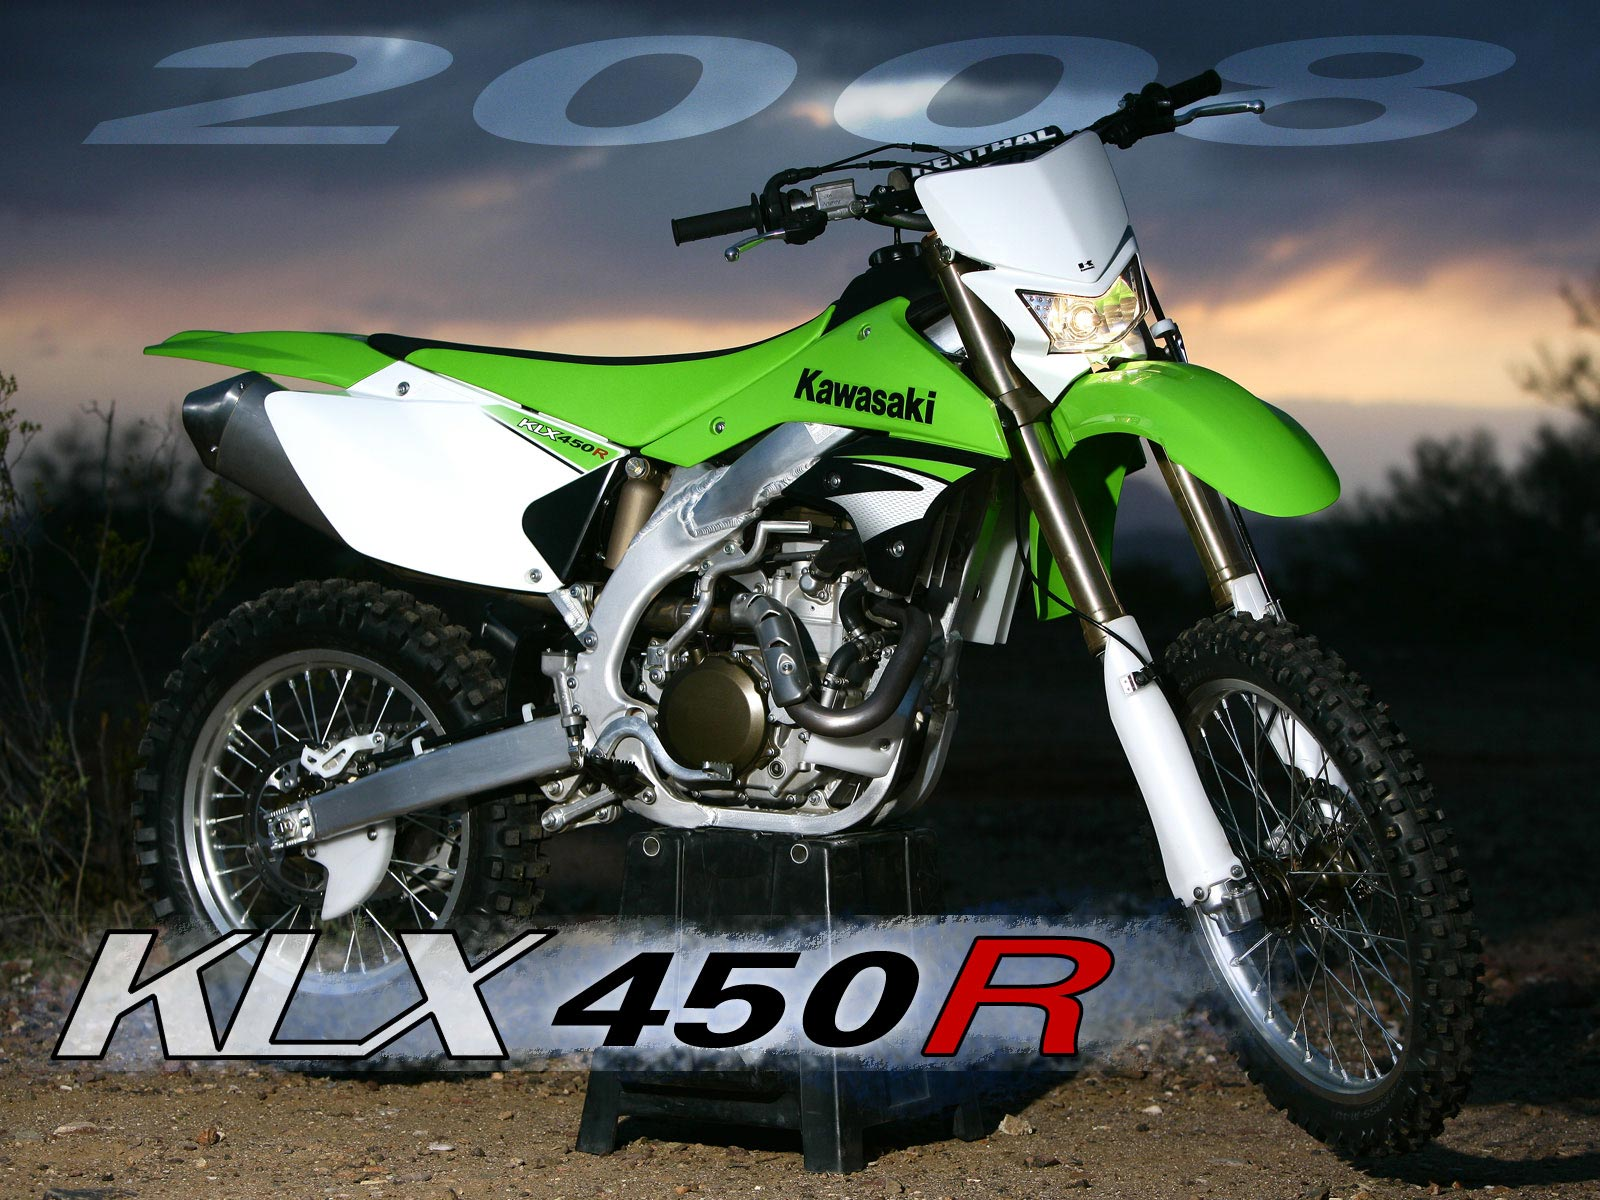 Kawasaki KLX 450R: pics, specs and list of seriess by year